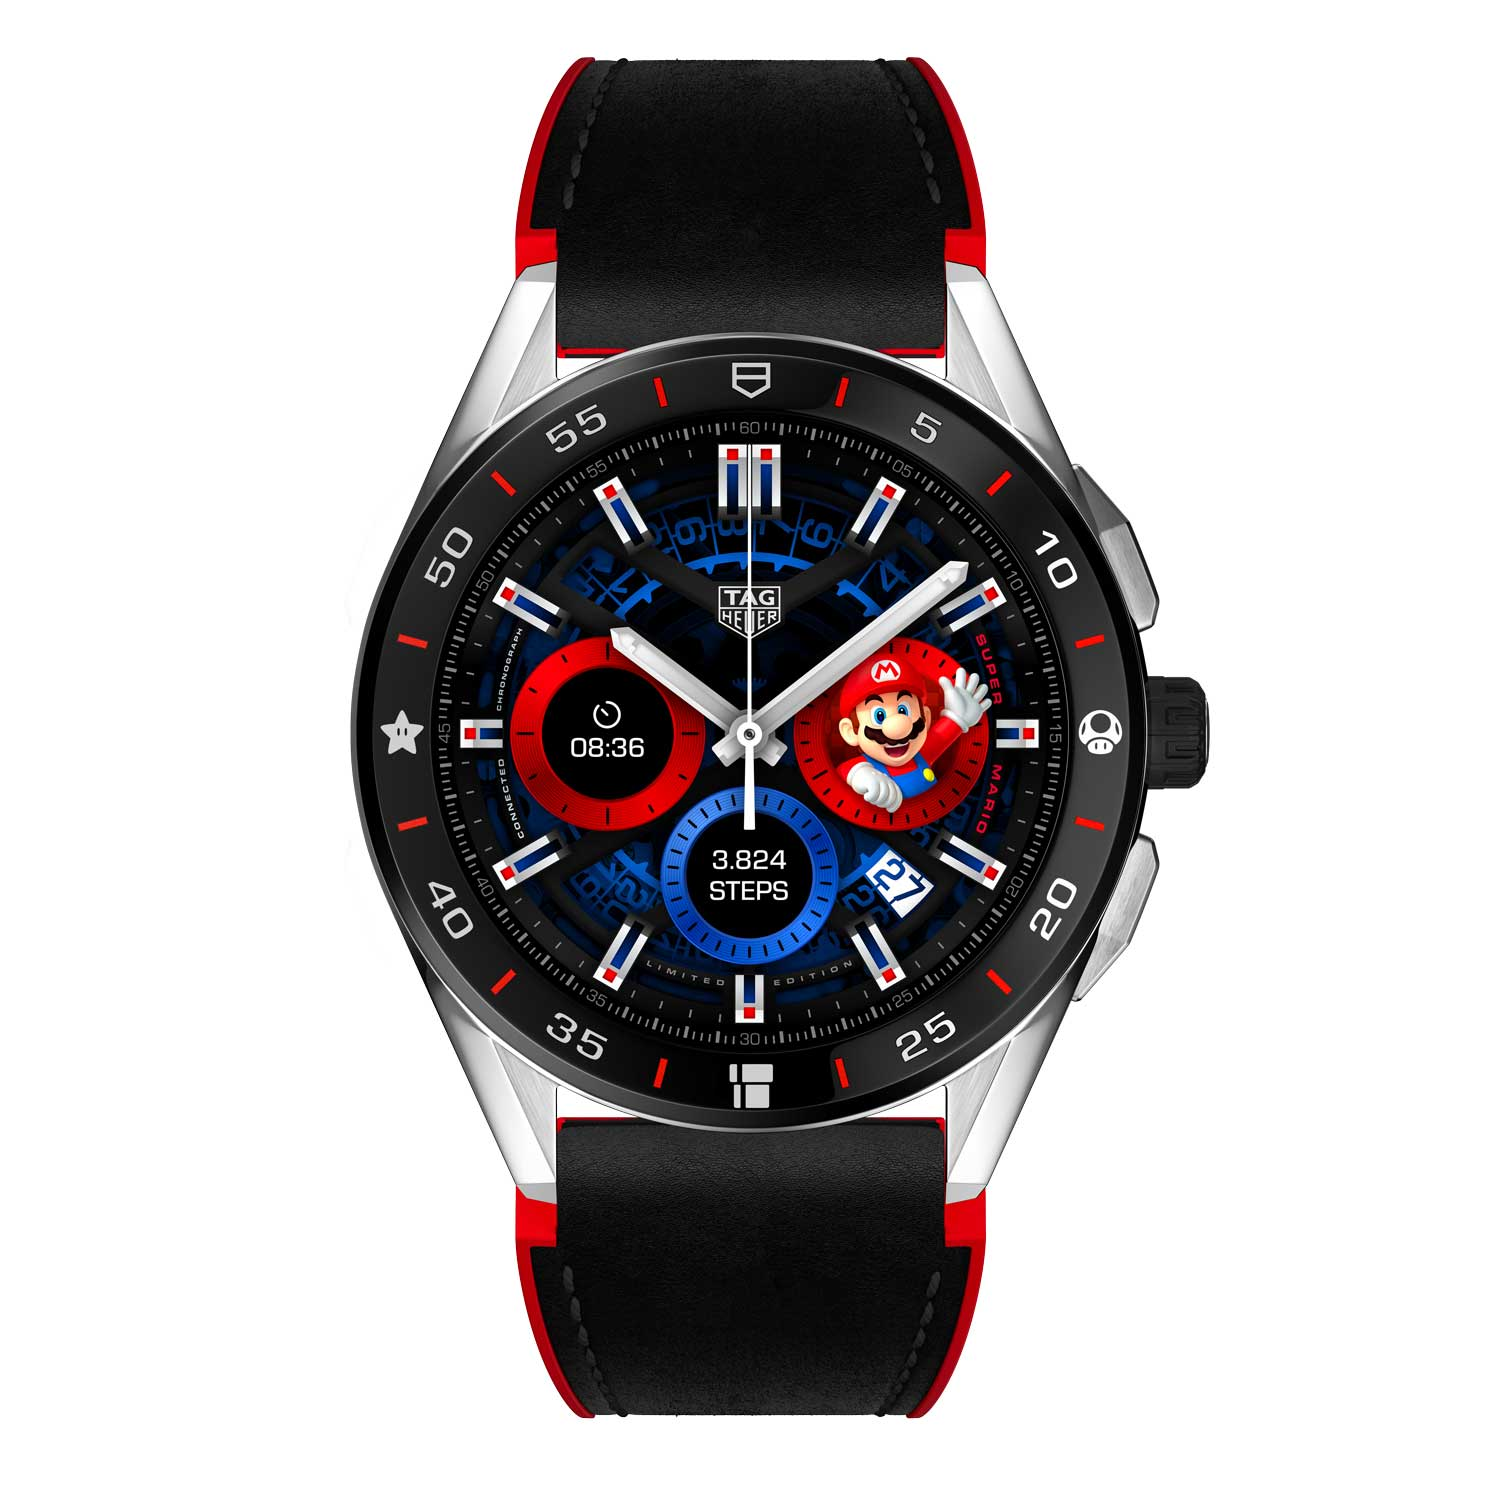 The TAG Heuer Connected x Super Mario Limited Edition